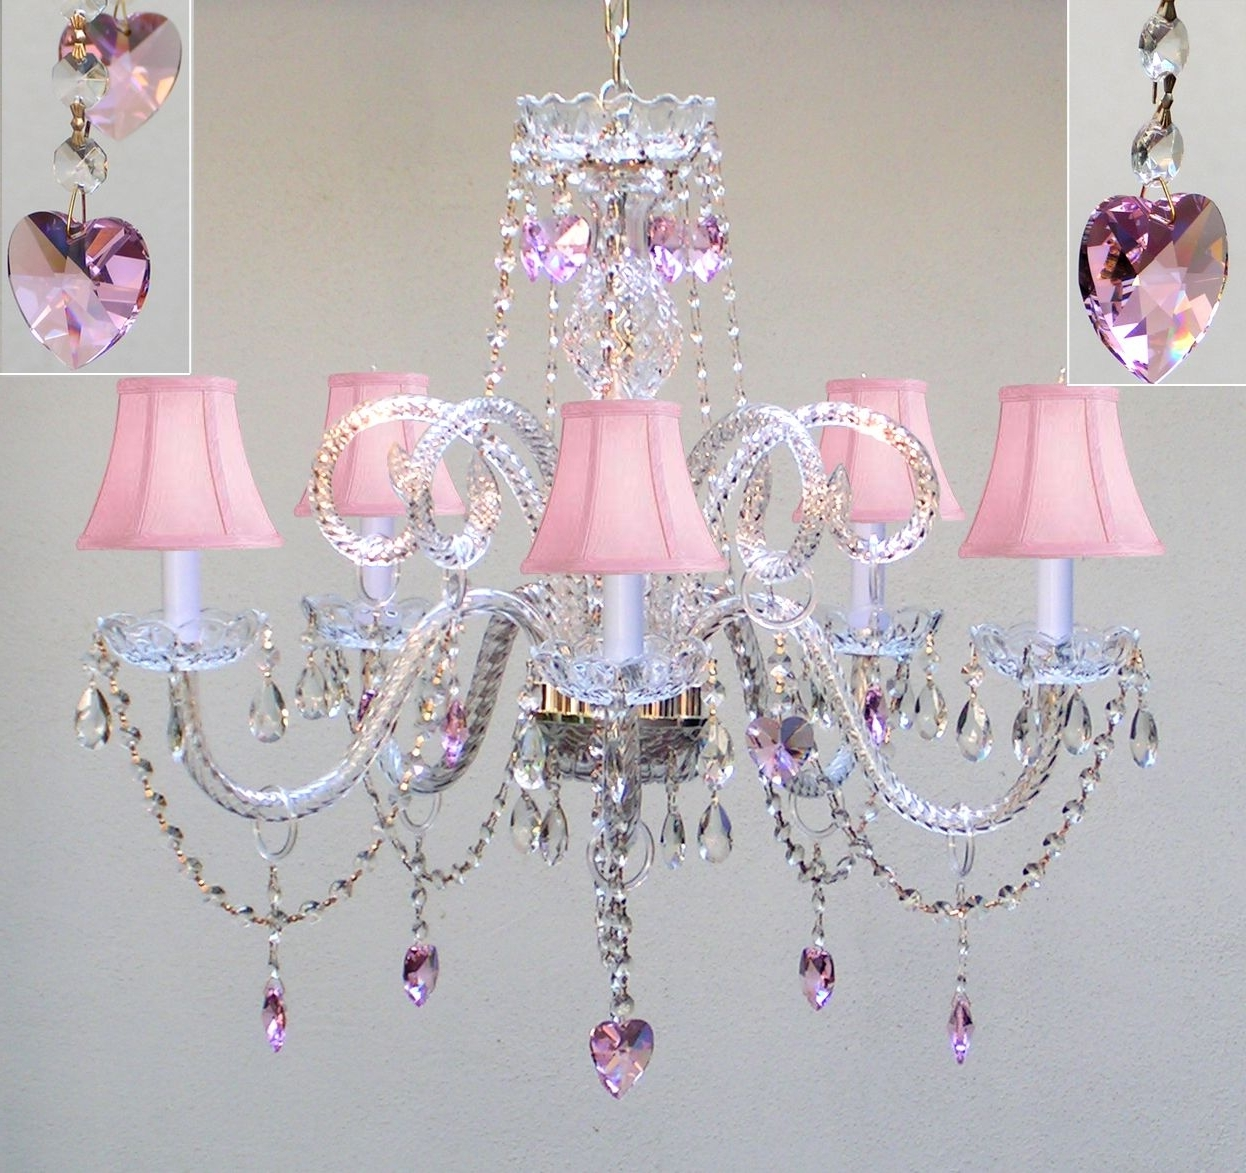 Fashionable For A Little Girls Room! A46 Sc/387/5/pinkhearts Chandeliers Inside Purple Crystal Chandelier Lighting (View 7 of 20)